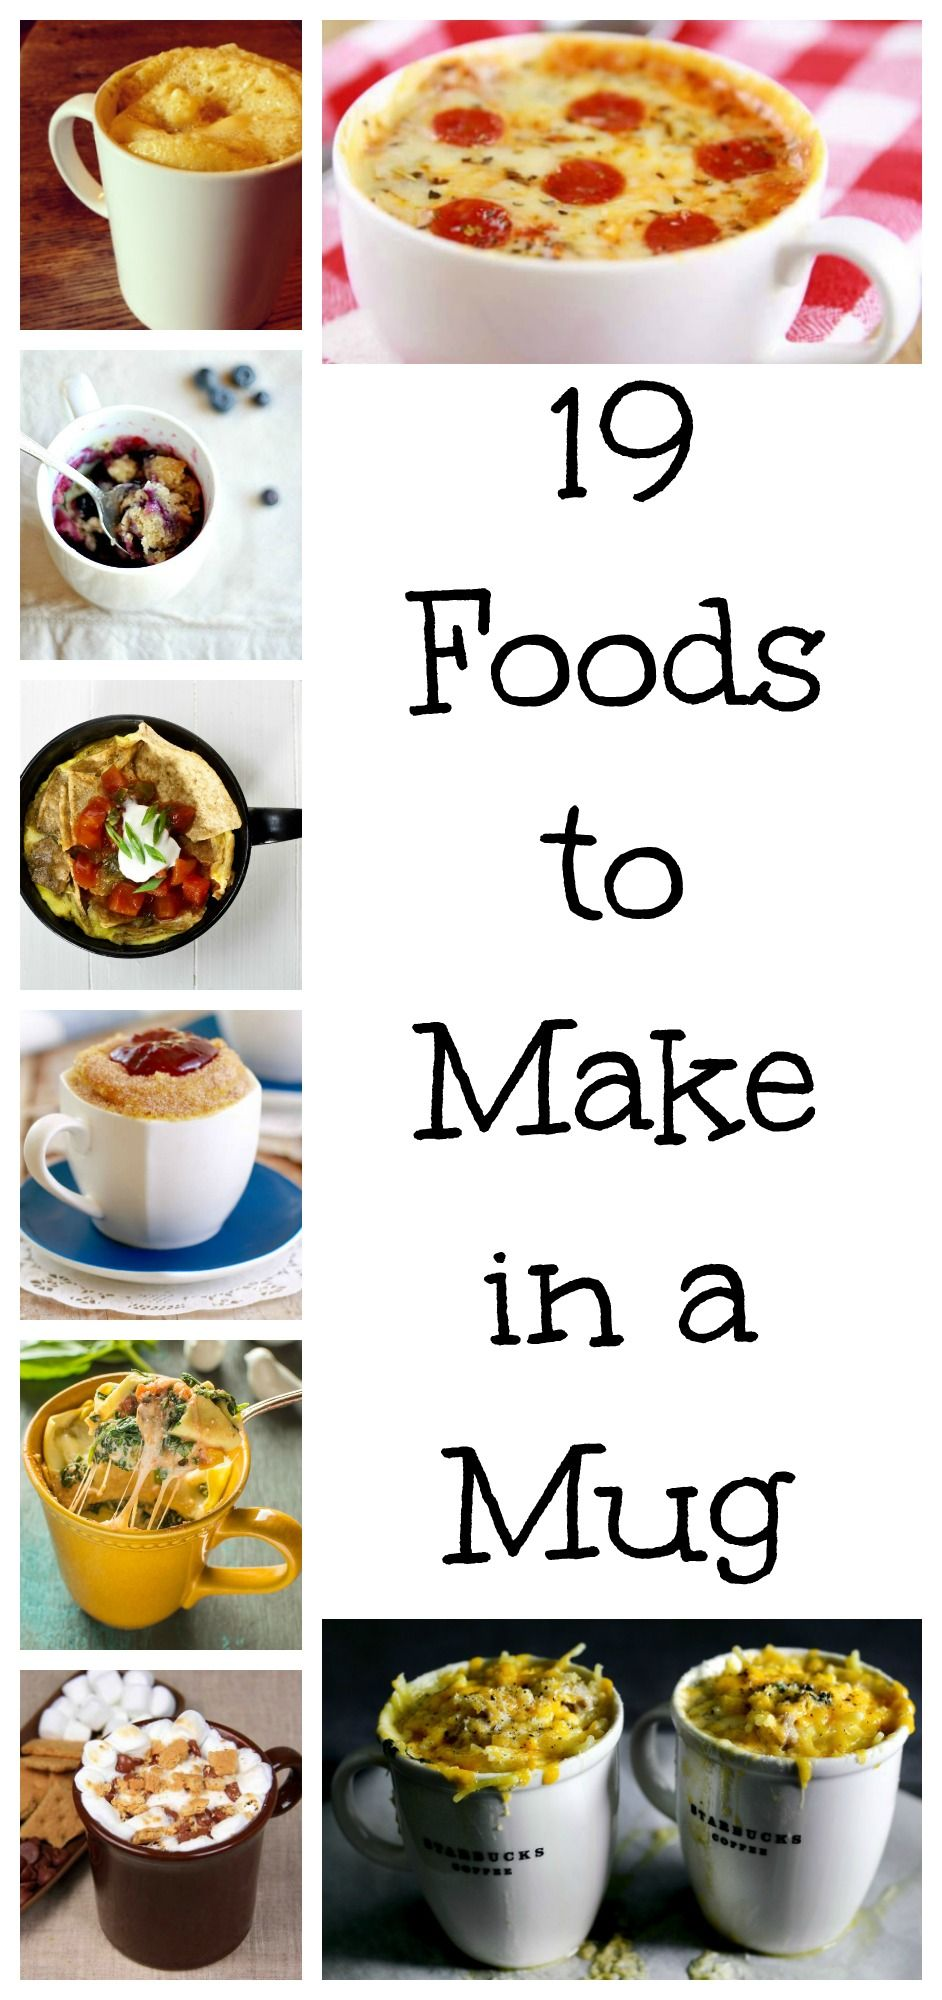 19 Foods To Make In A Mug